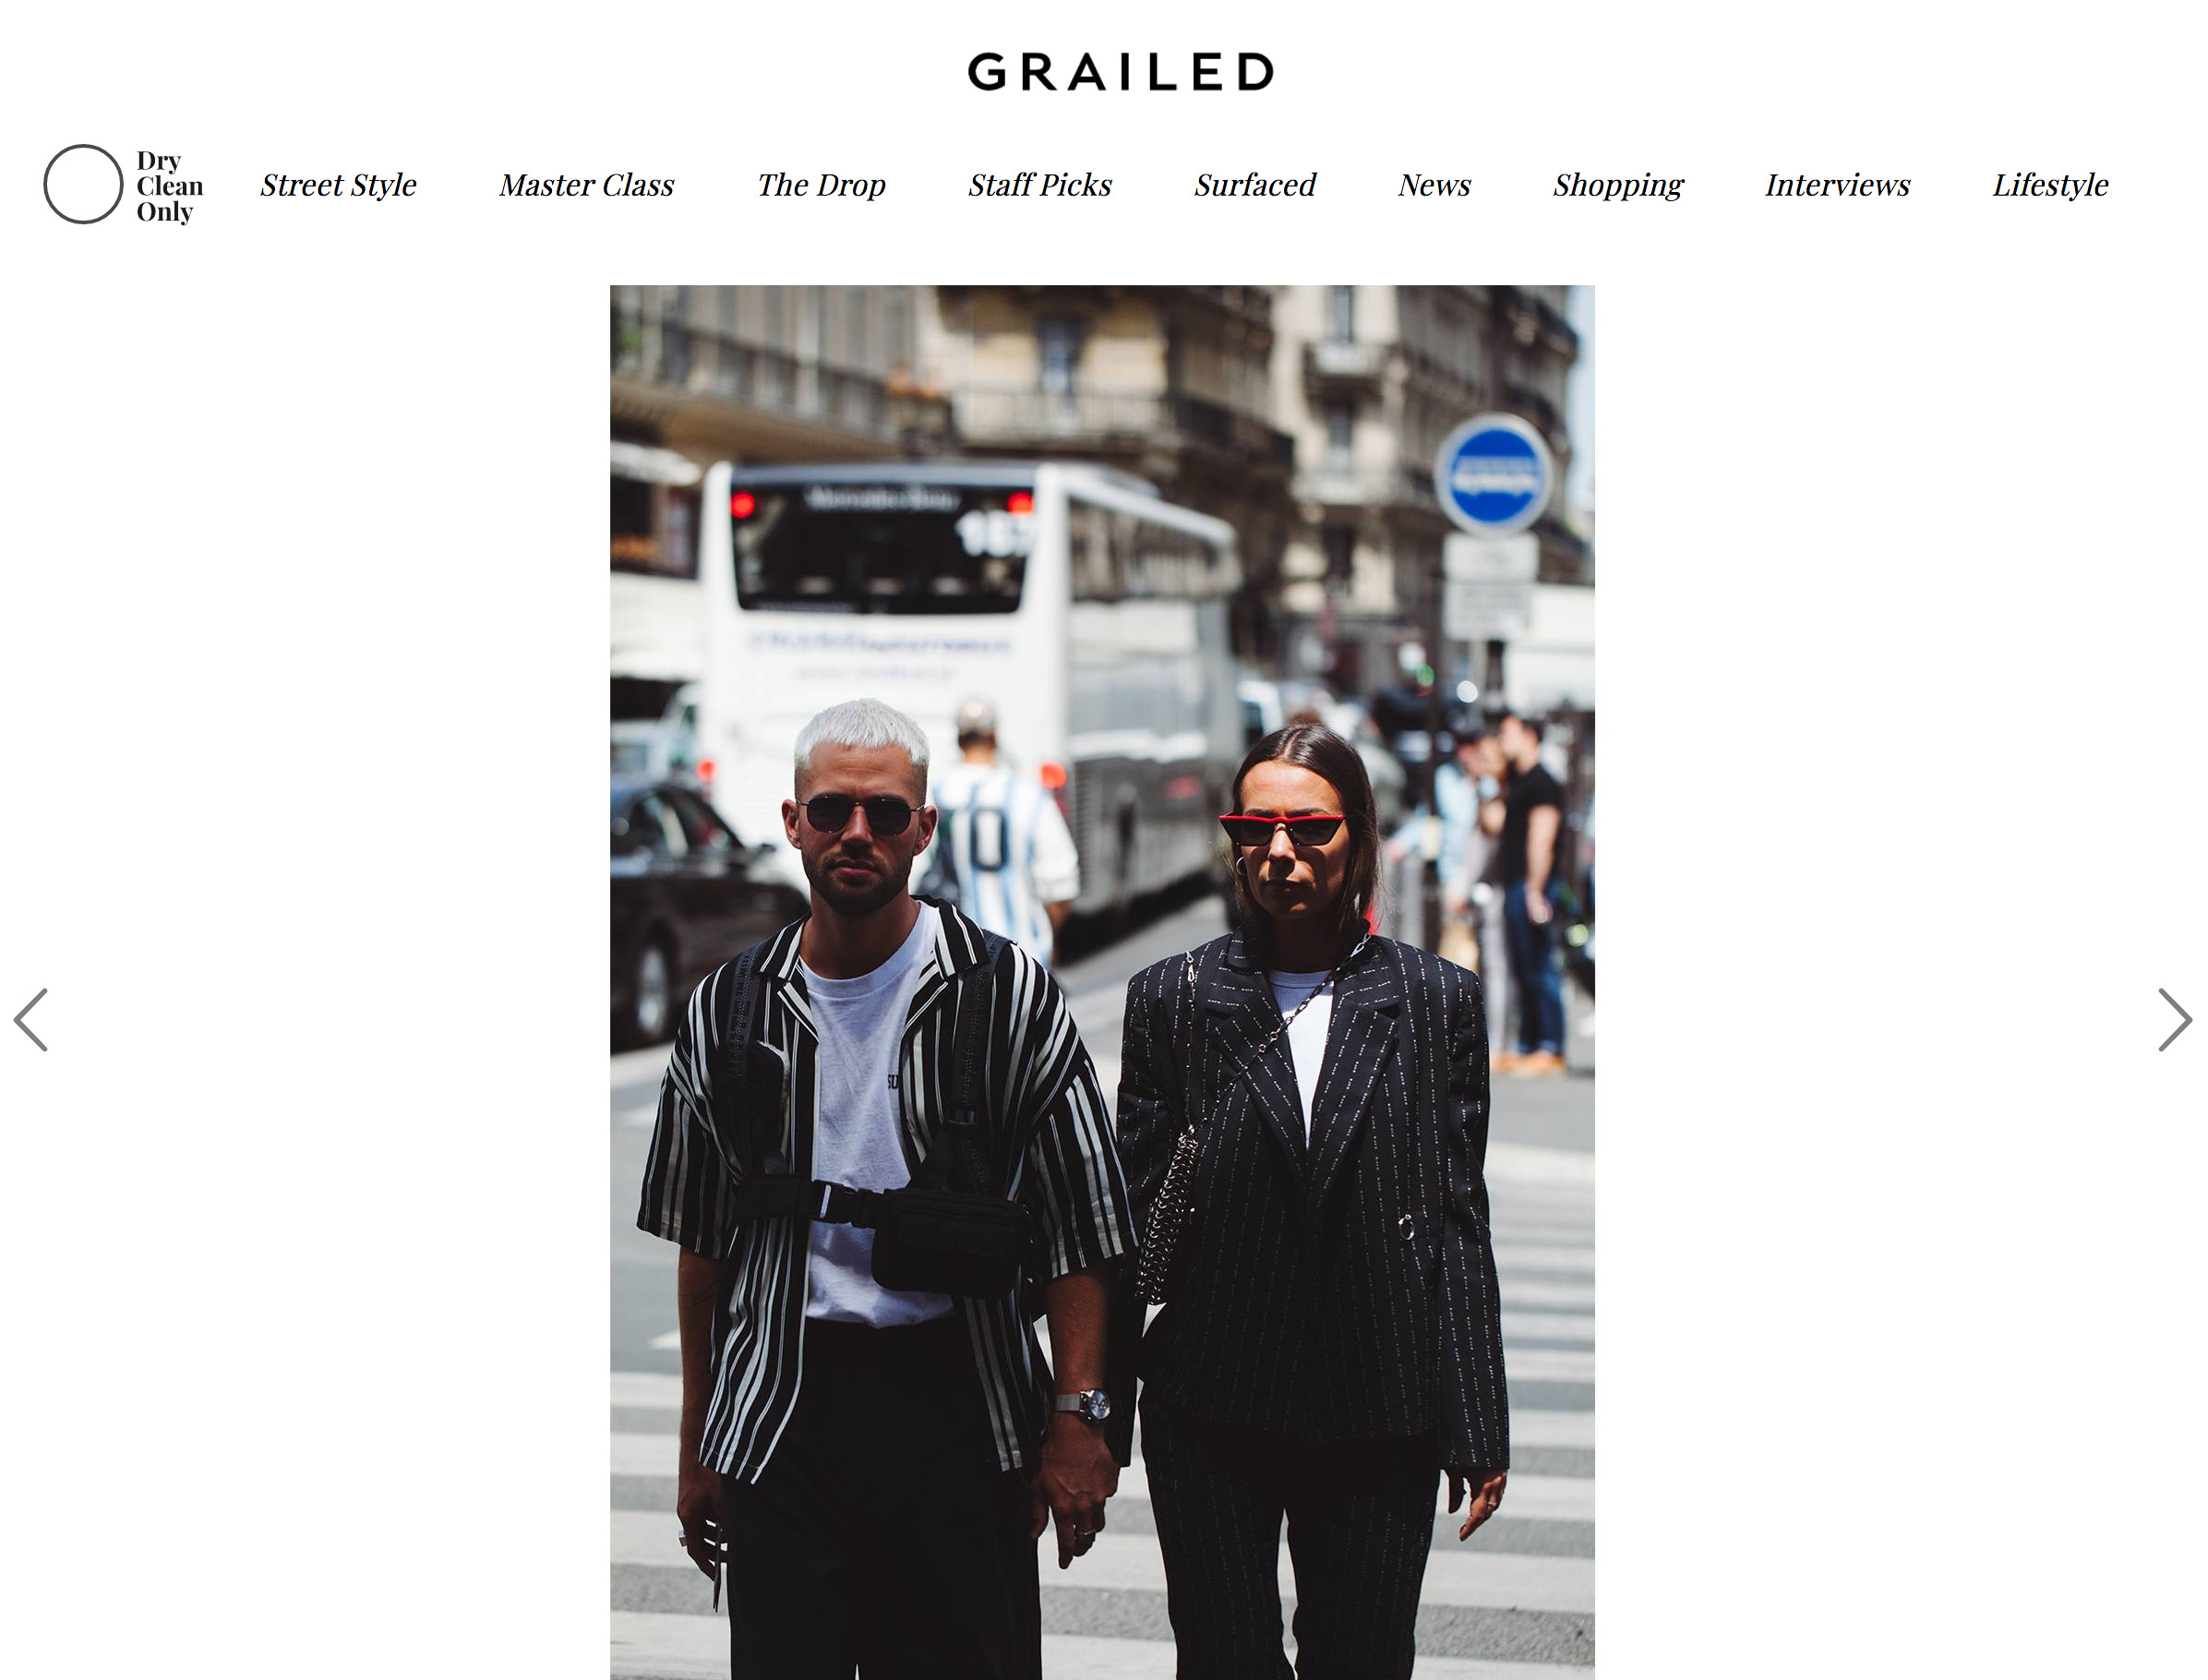 GRAILED street style